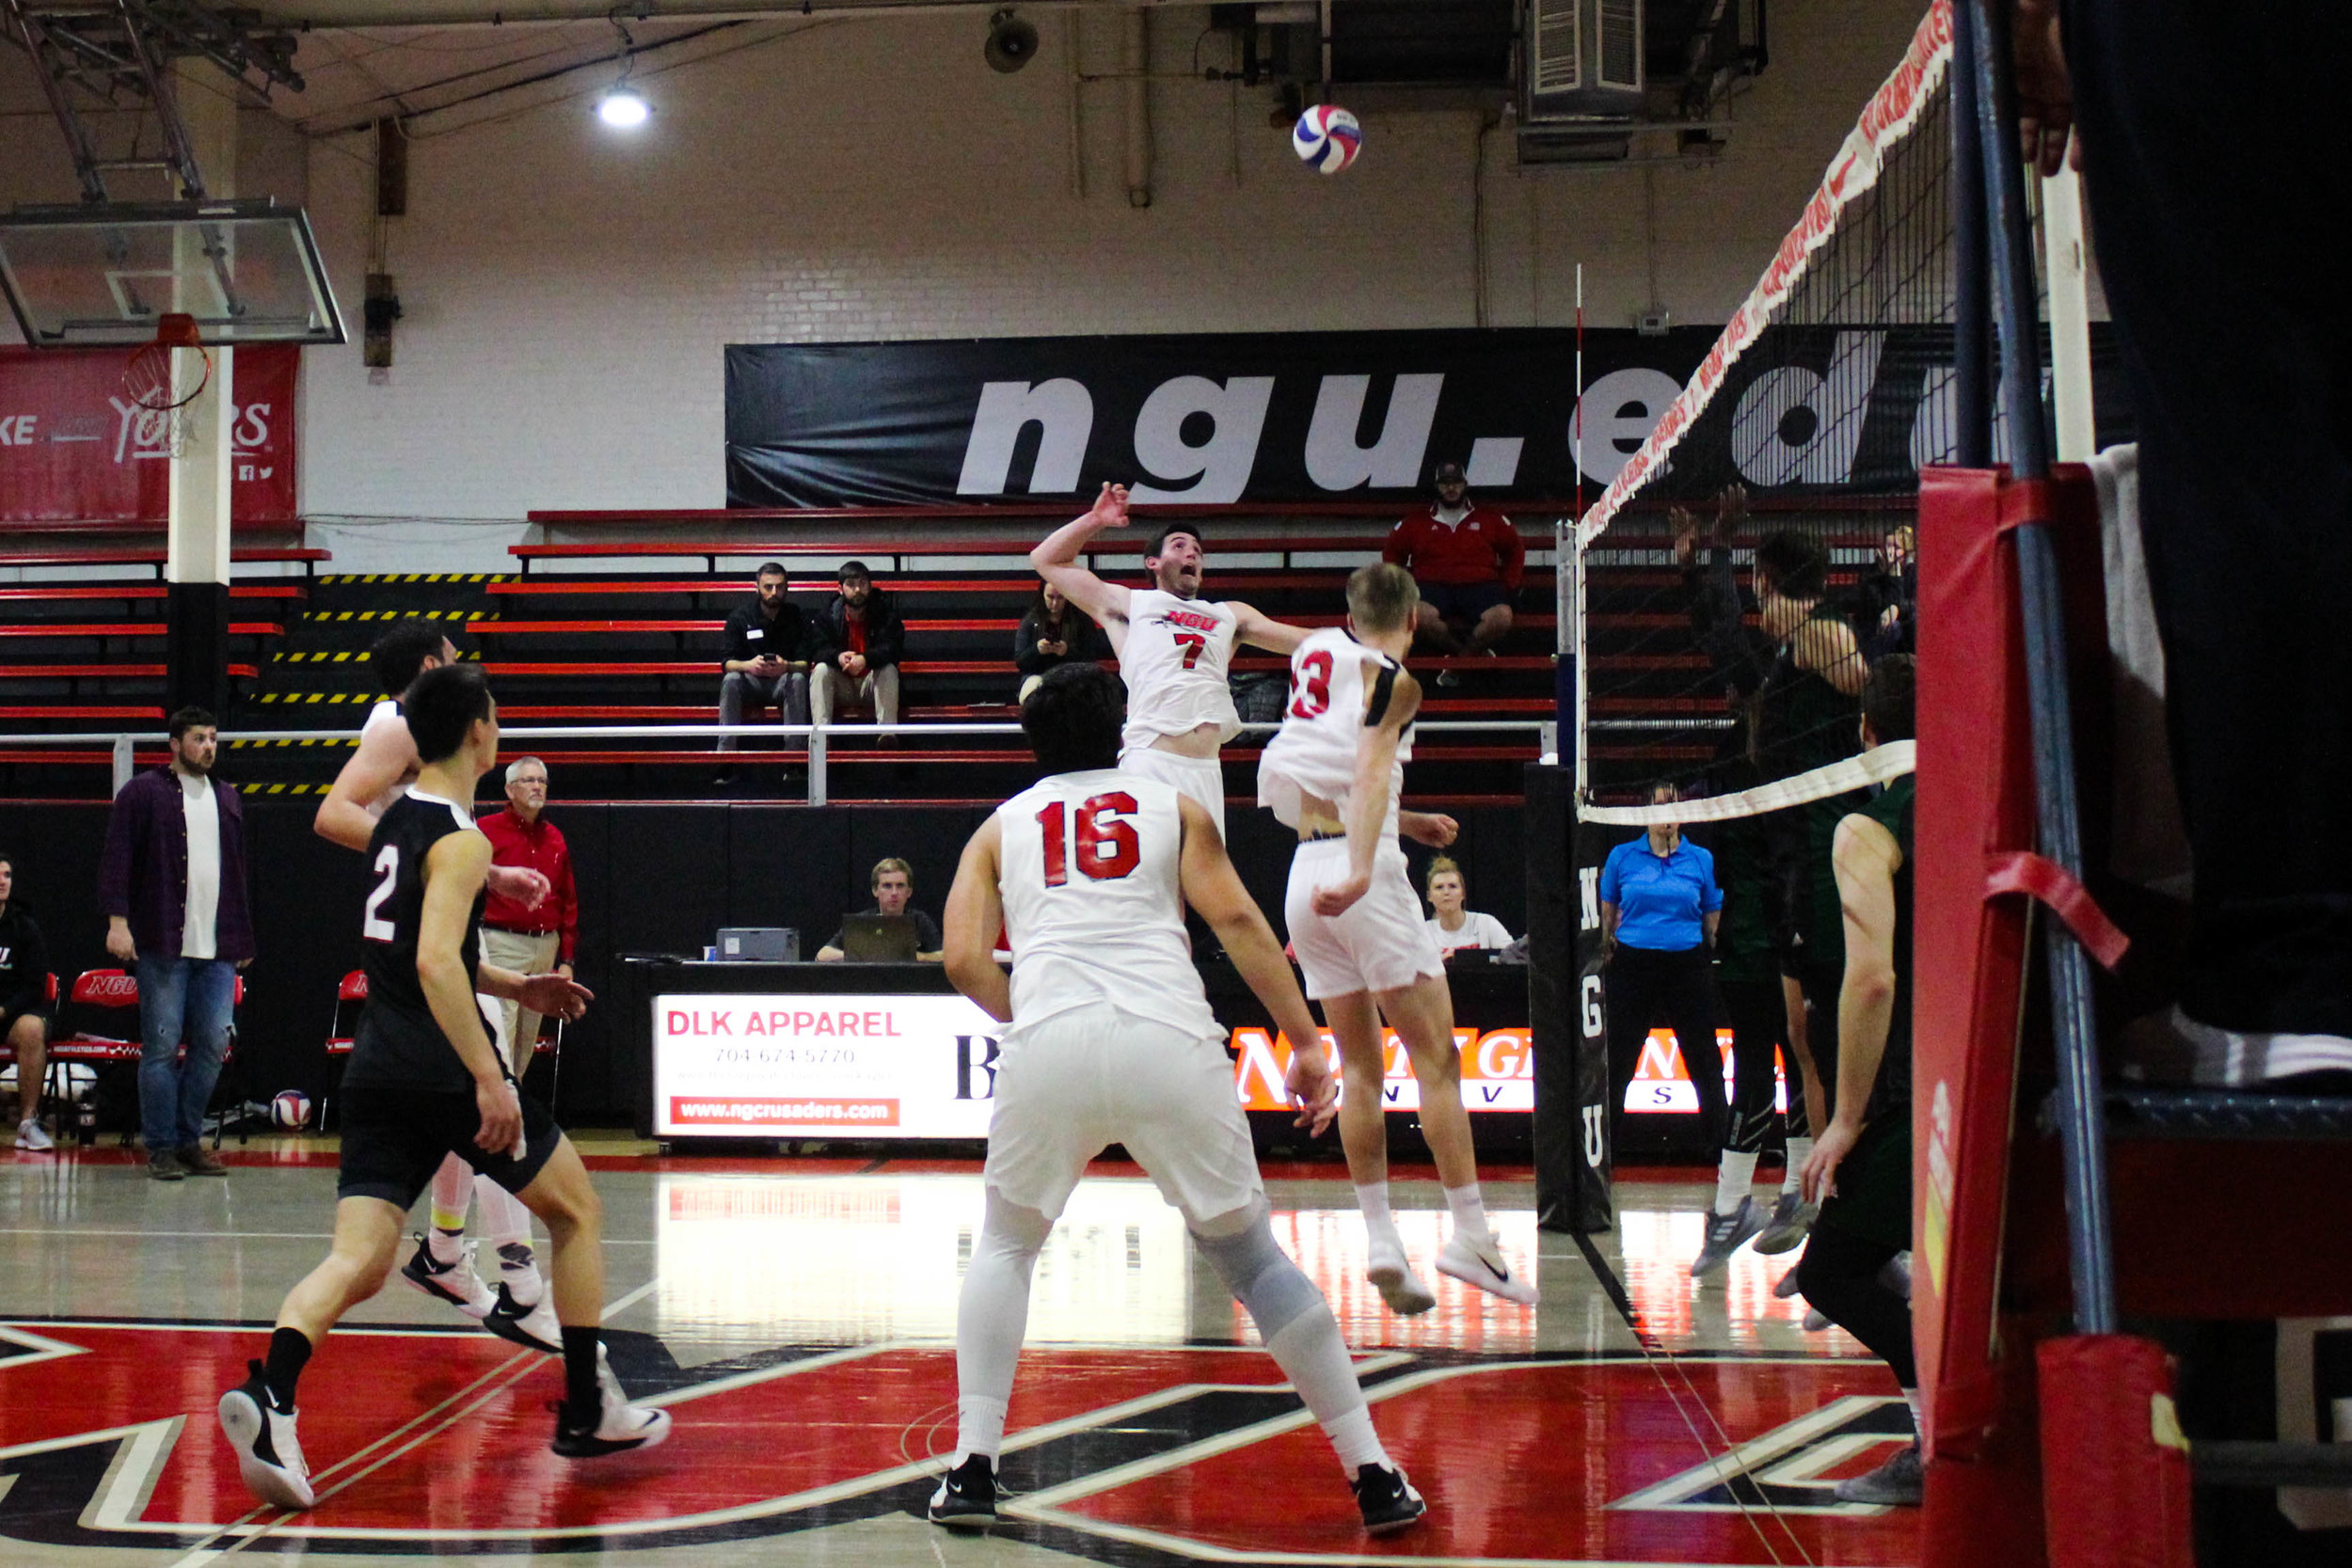 Junior Jackson Gilbert (7) leaps to spike the ball over the net onto Mount Olive's side.